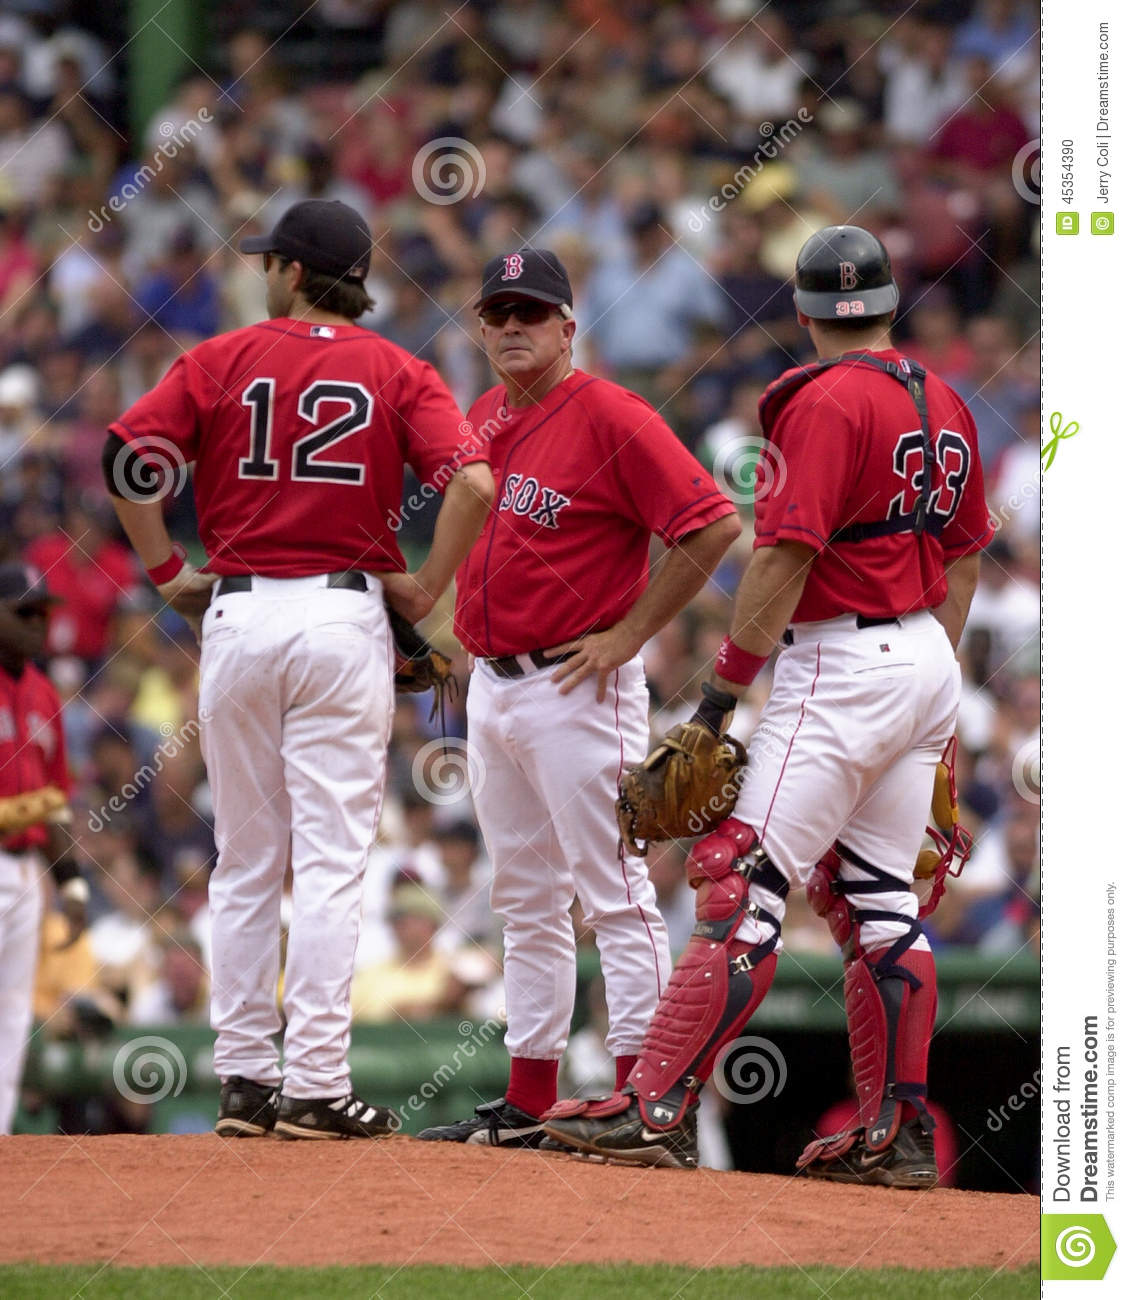 Grady Little, directeur des Red Sox de Boston